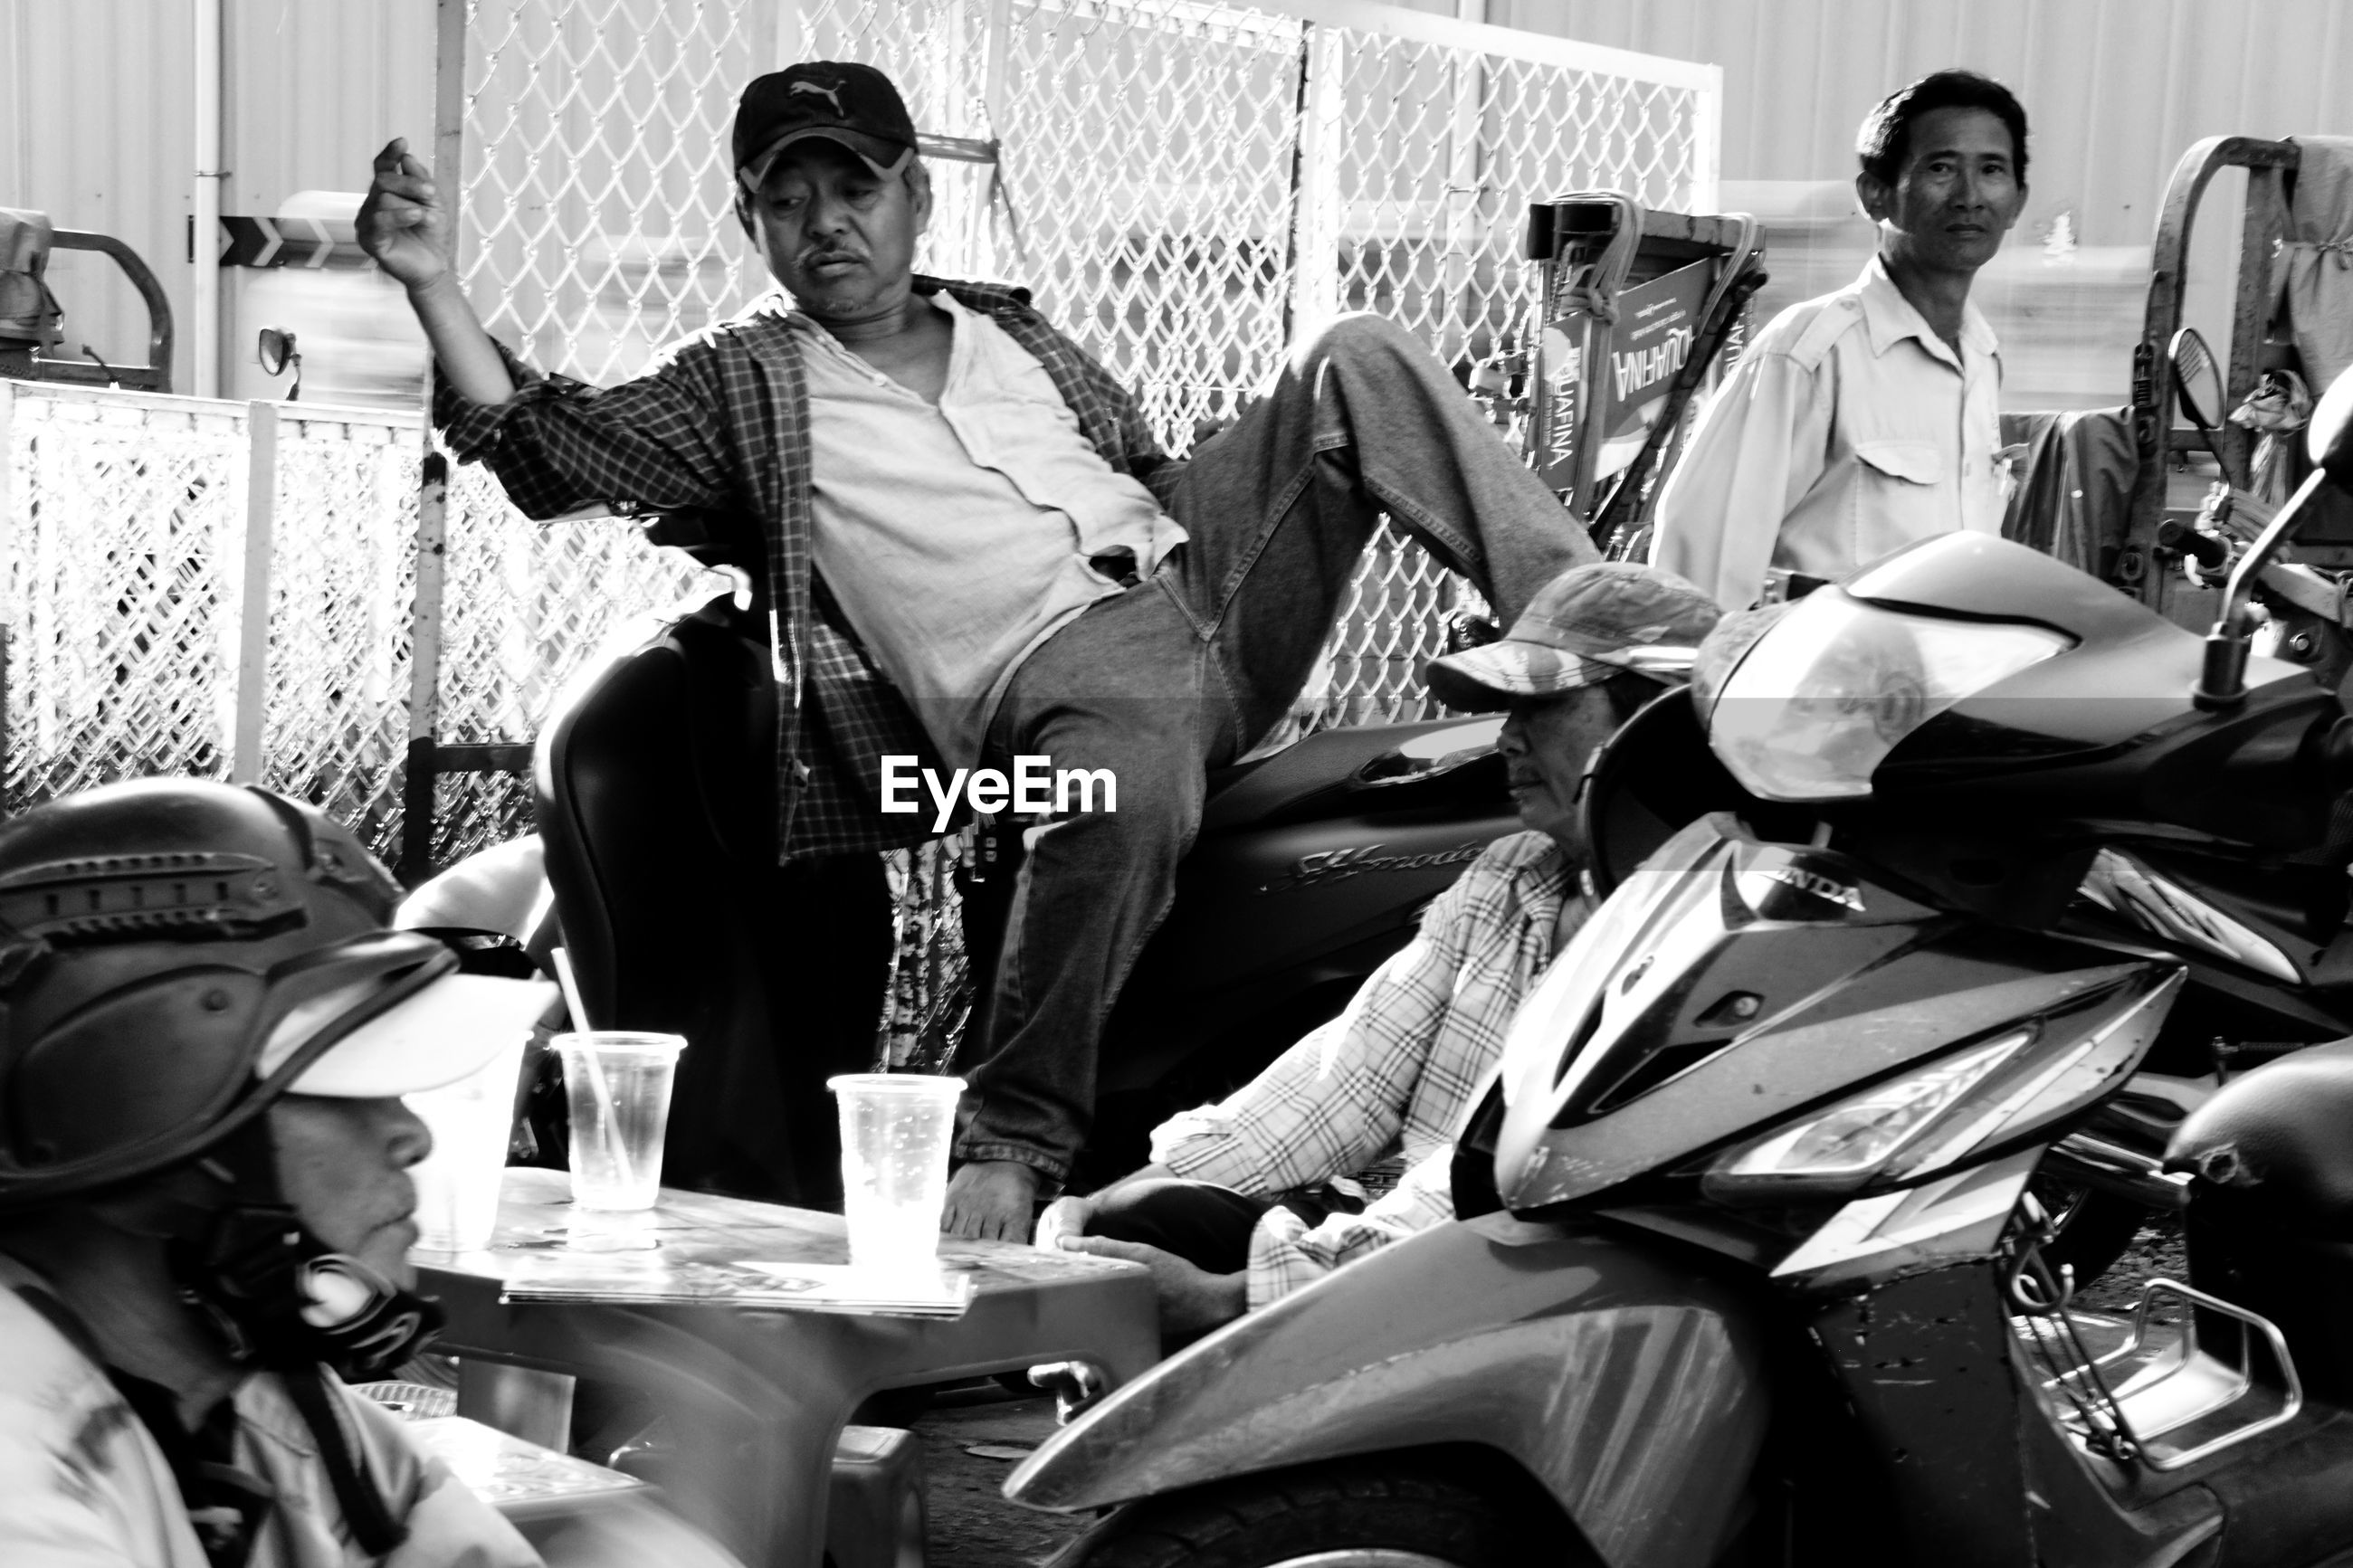 PEOPLE SITTING ON CHAIR AT MARKET